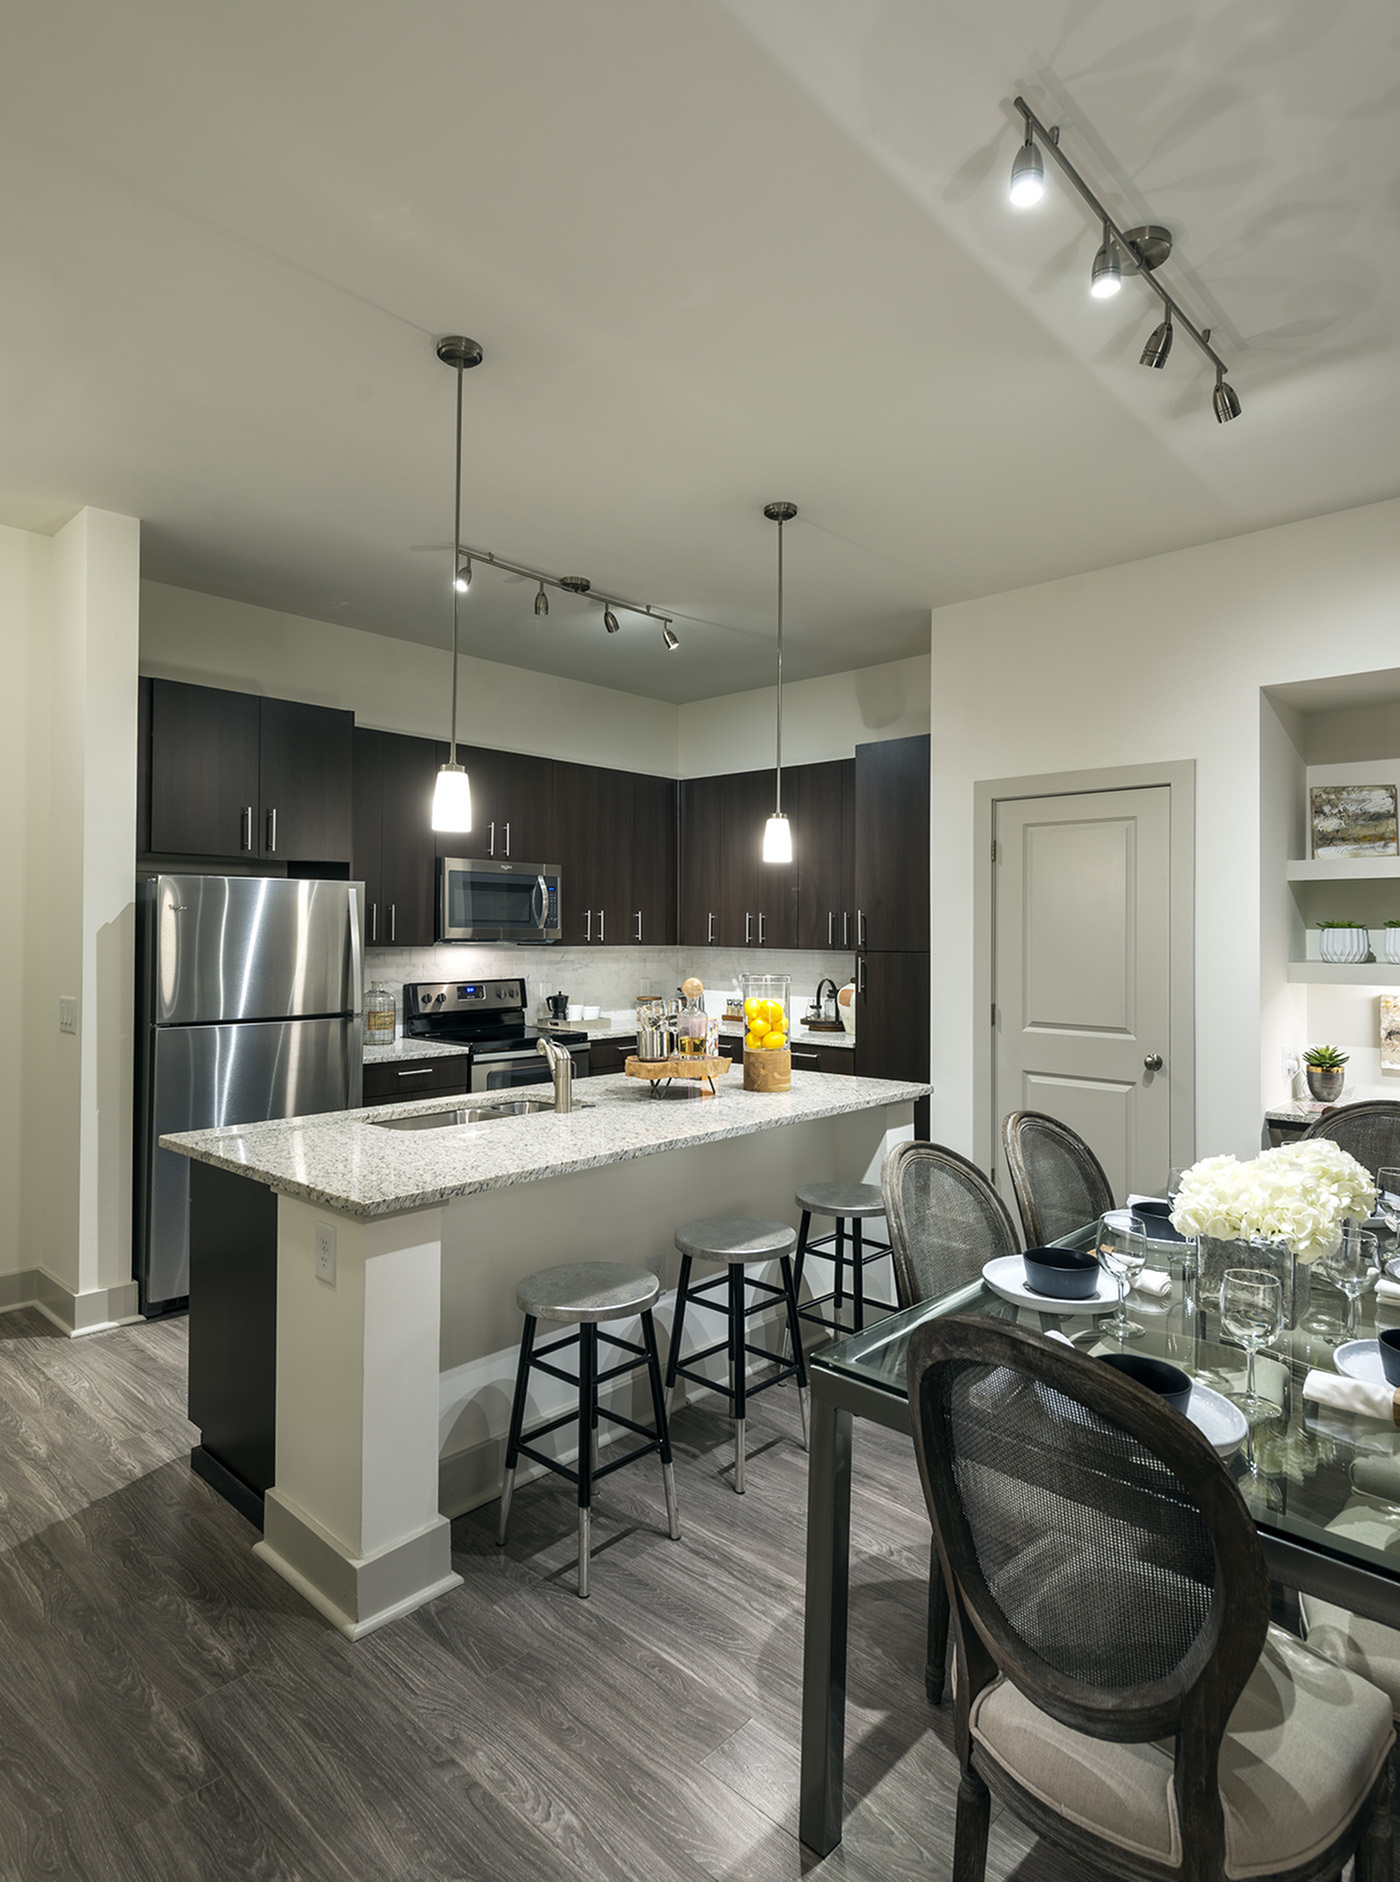 Image of Gourmet chef kitchen with stainless steel appliances for Hanover Perimeter